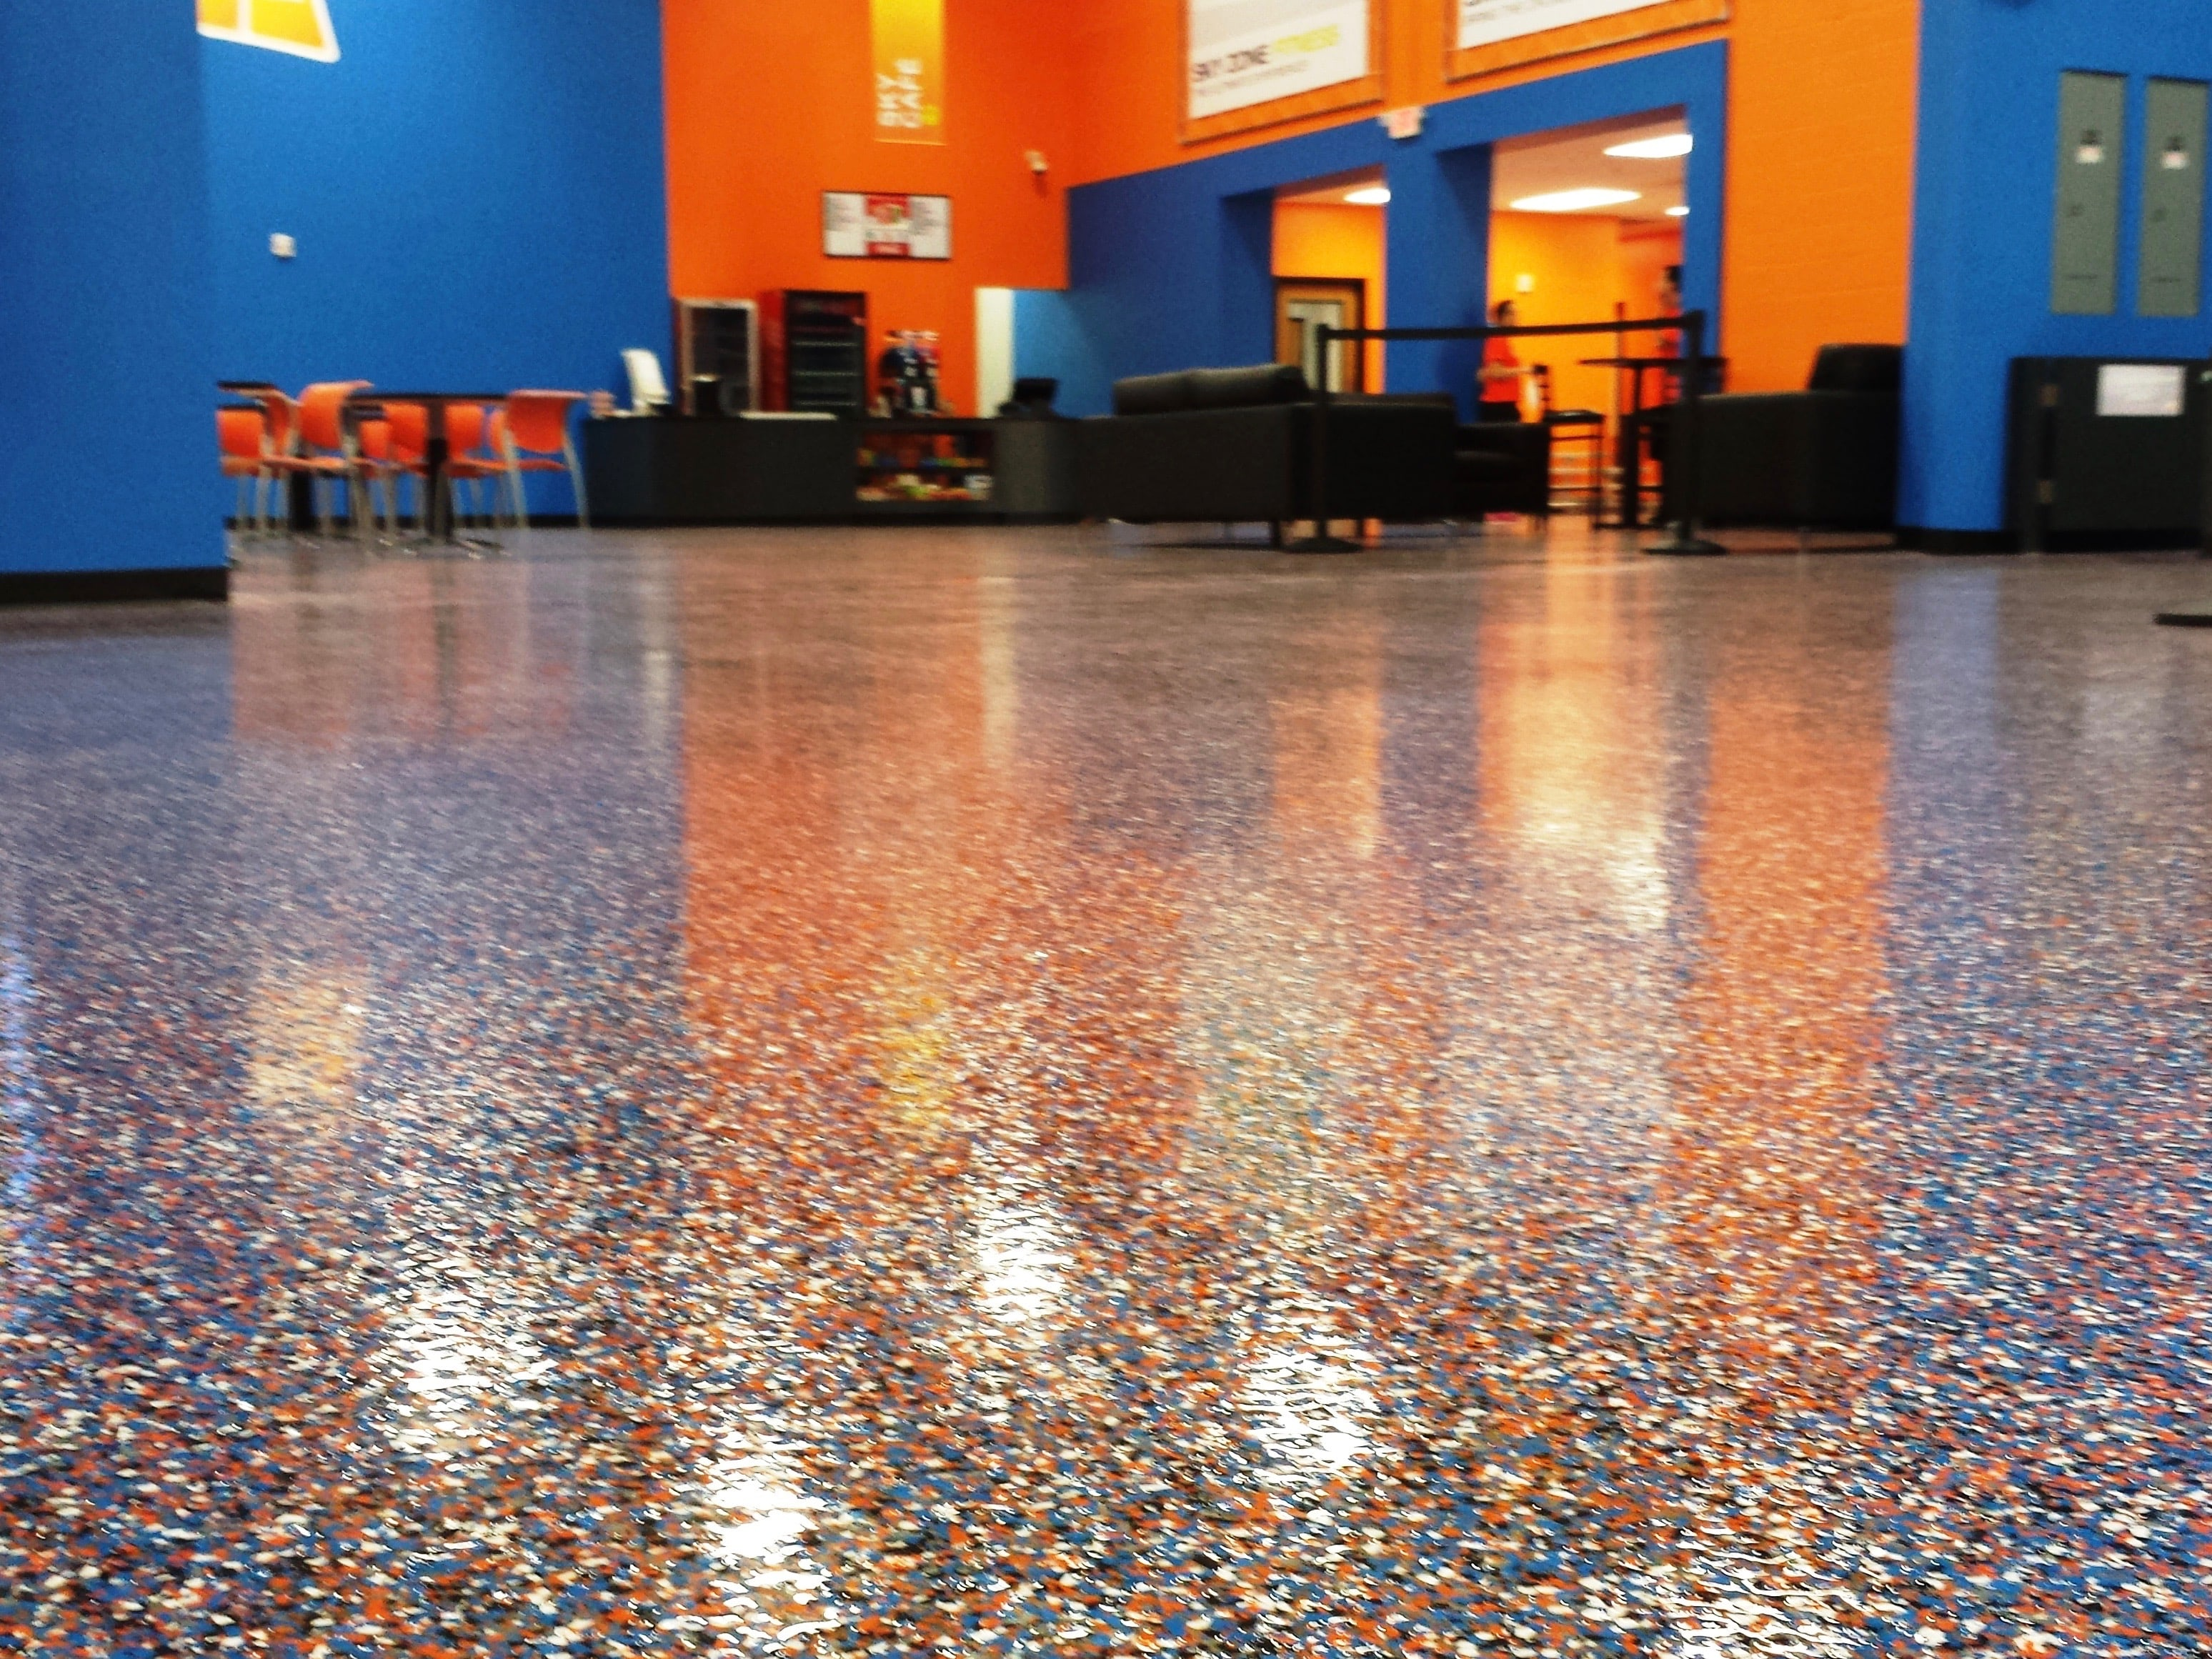 School cafeteria speckled flooring